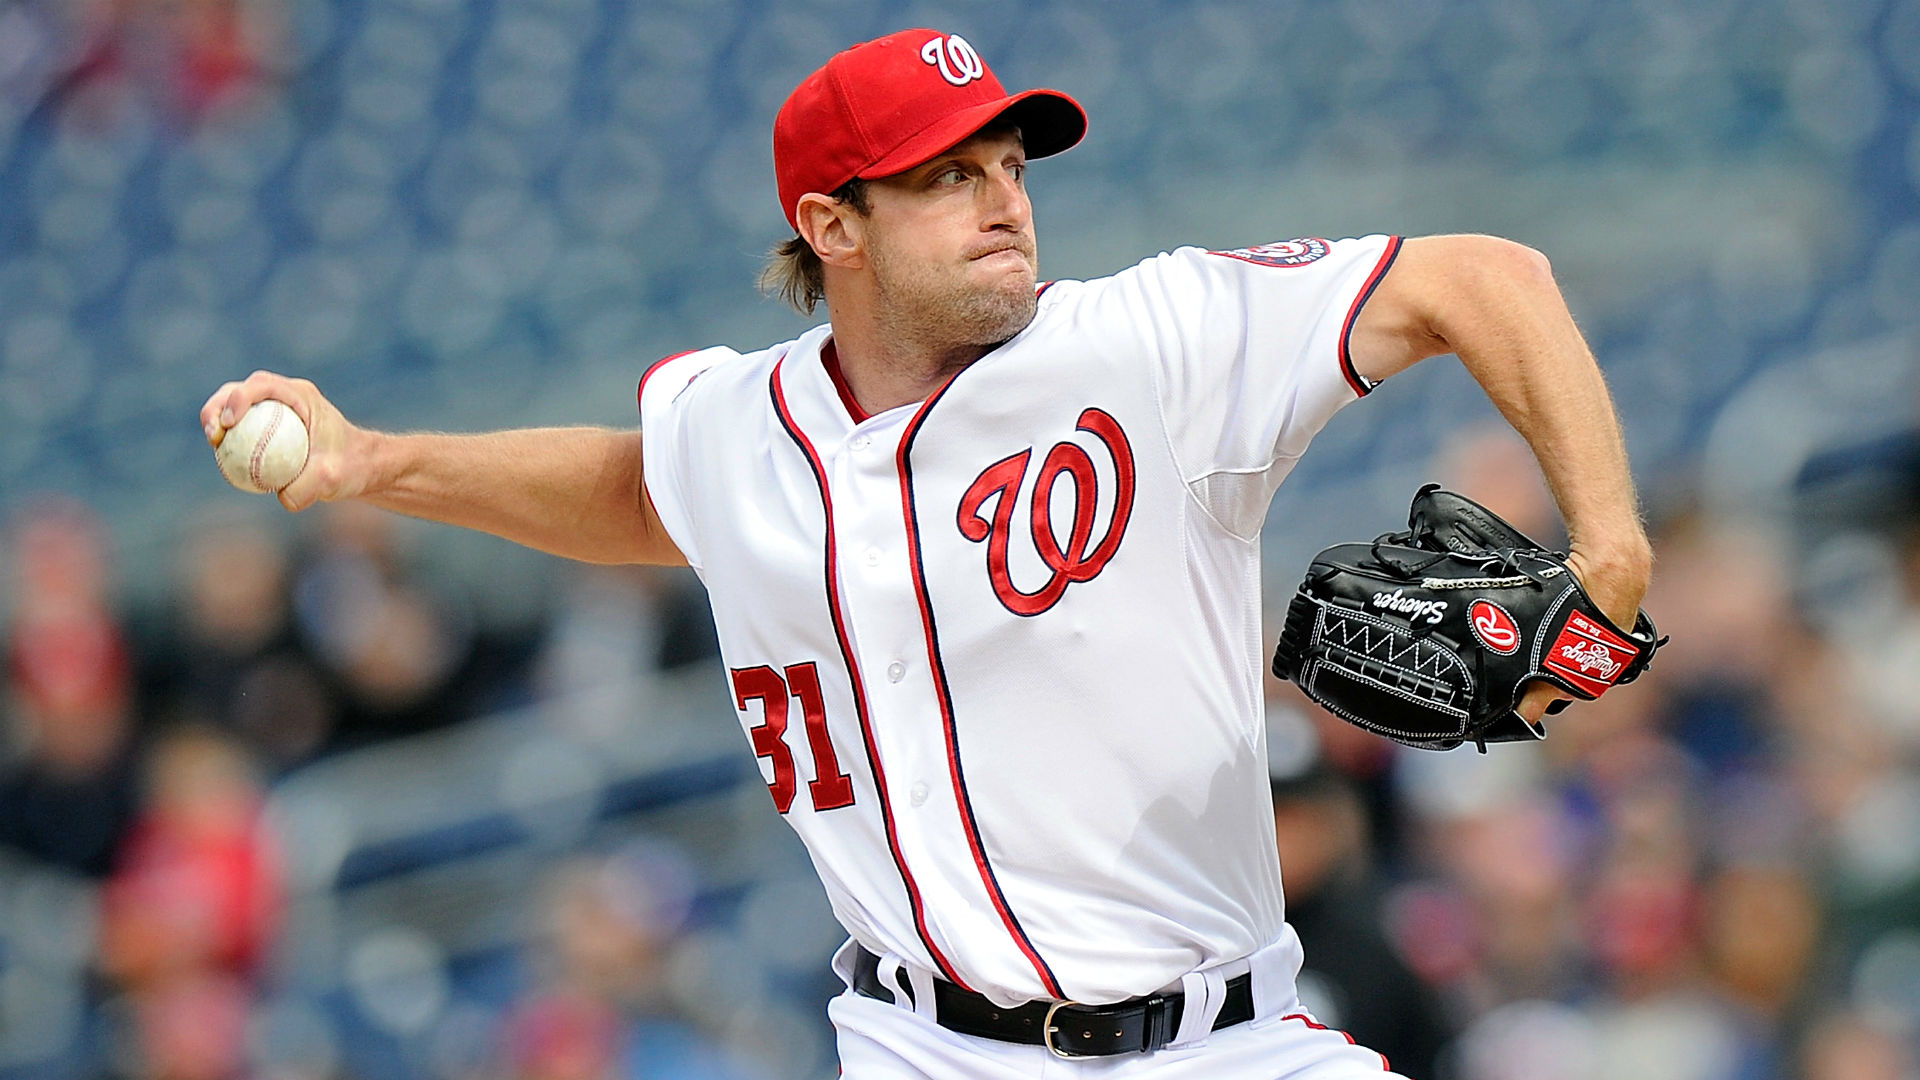 Max Scherzer injury update: Nationals ace doubtful for Tuesday start